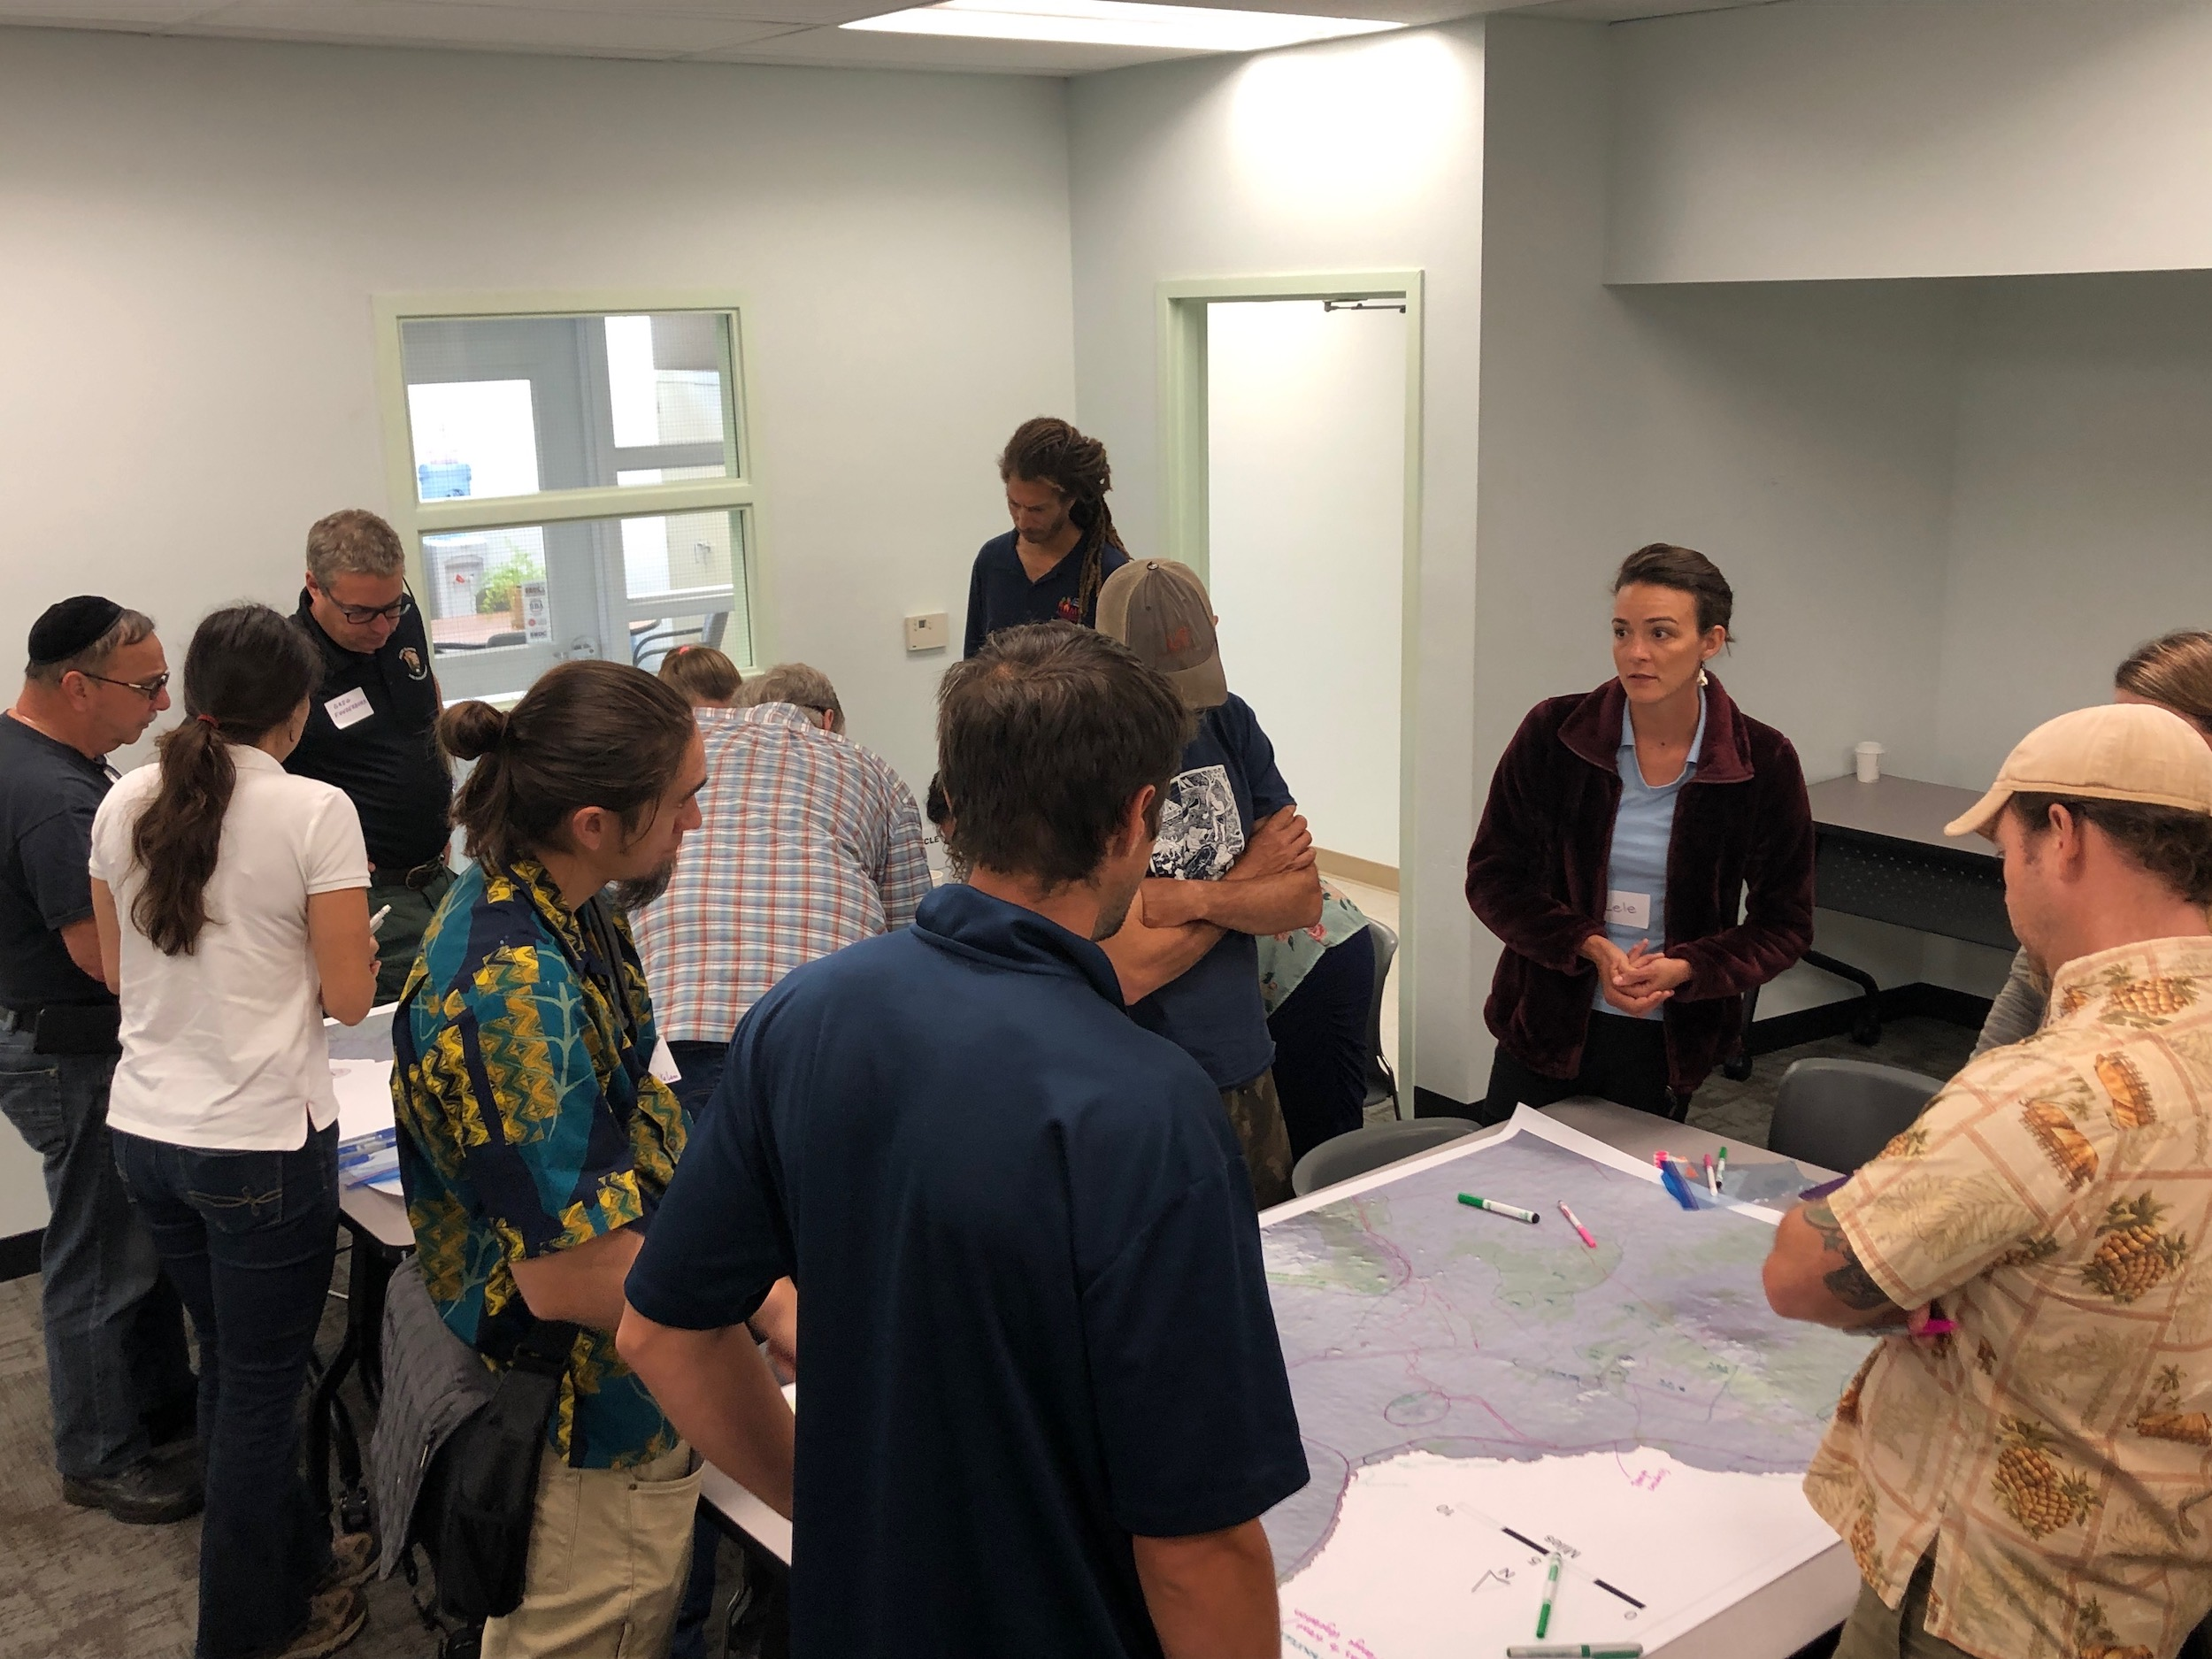 Hawaii Island Hilo Vegetative Fuels Management Collaborative Action Planning Workshop_2_22_2019_14.jpg